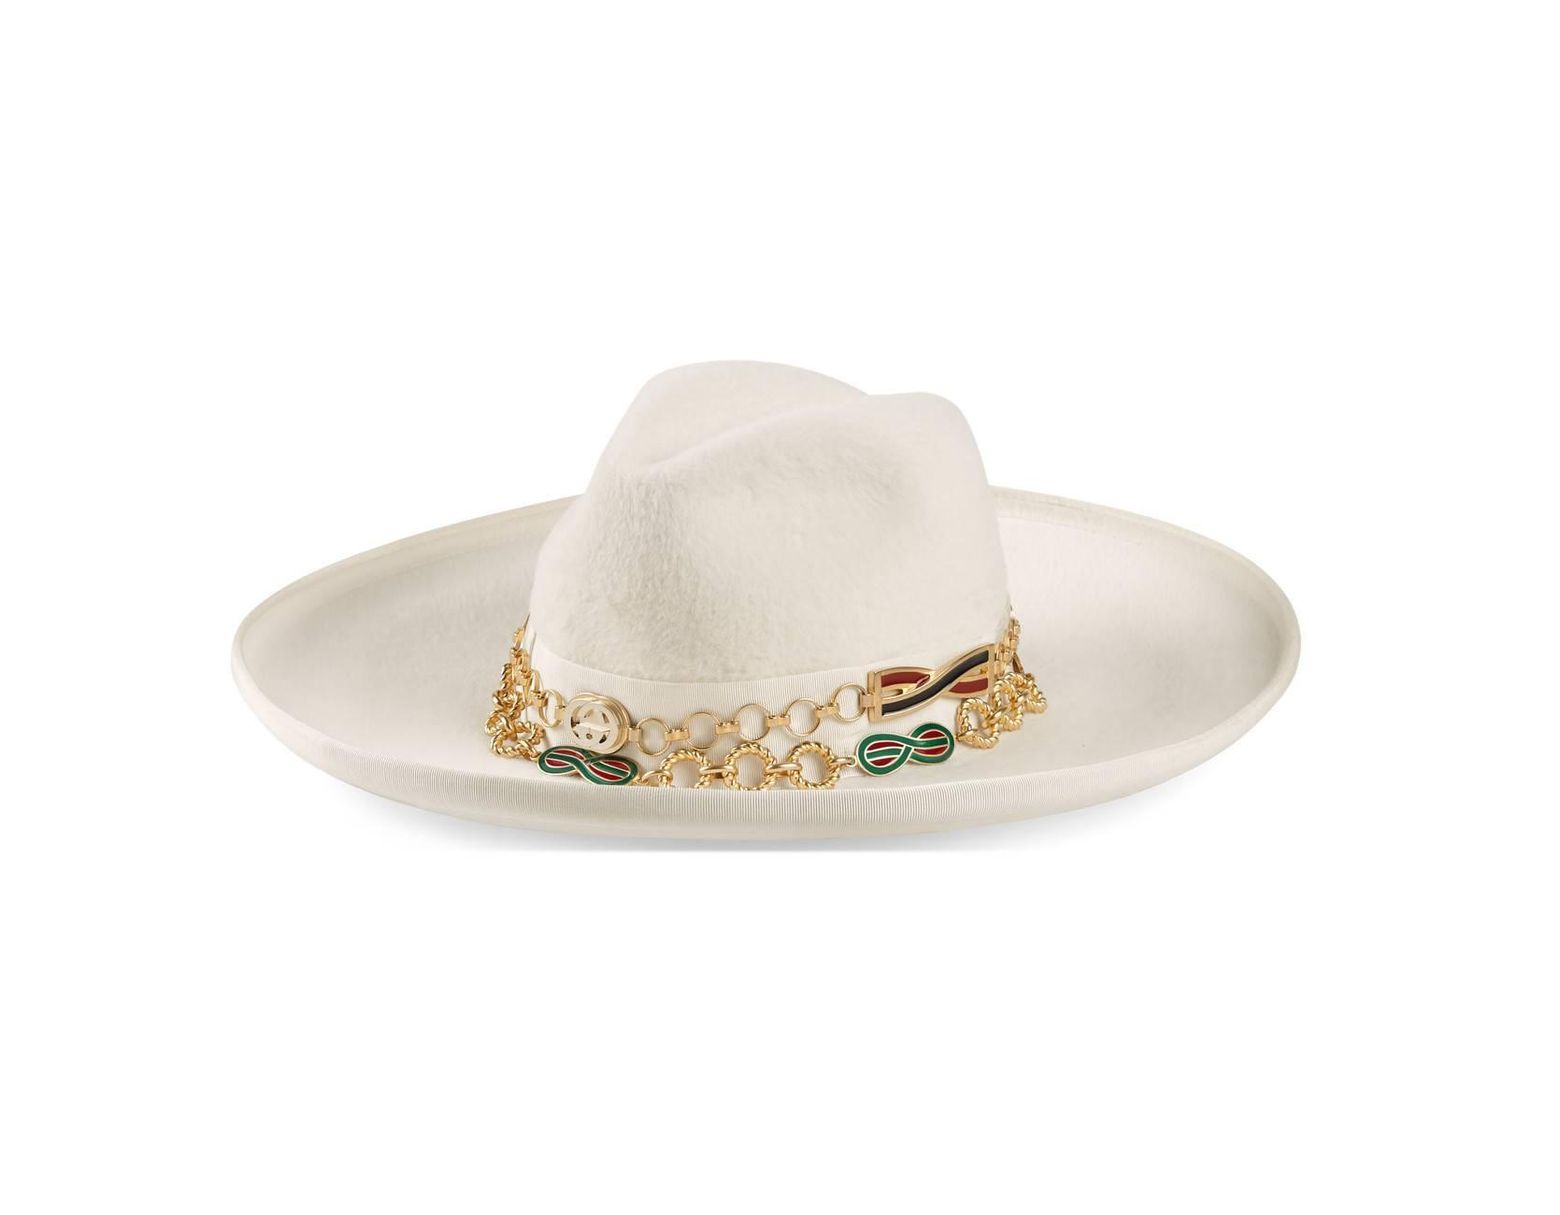 80a652c0660bb Gucci Felt Wide-brim Hat With Chain Detail in White for Men - Lyst